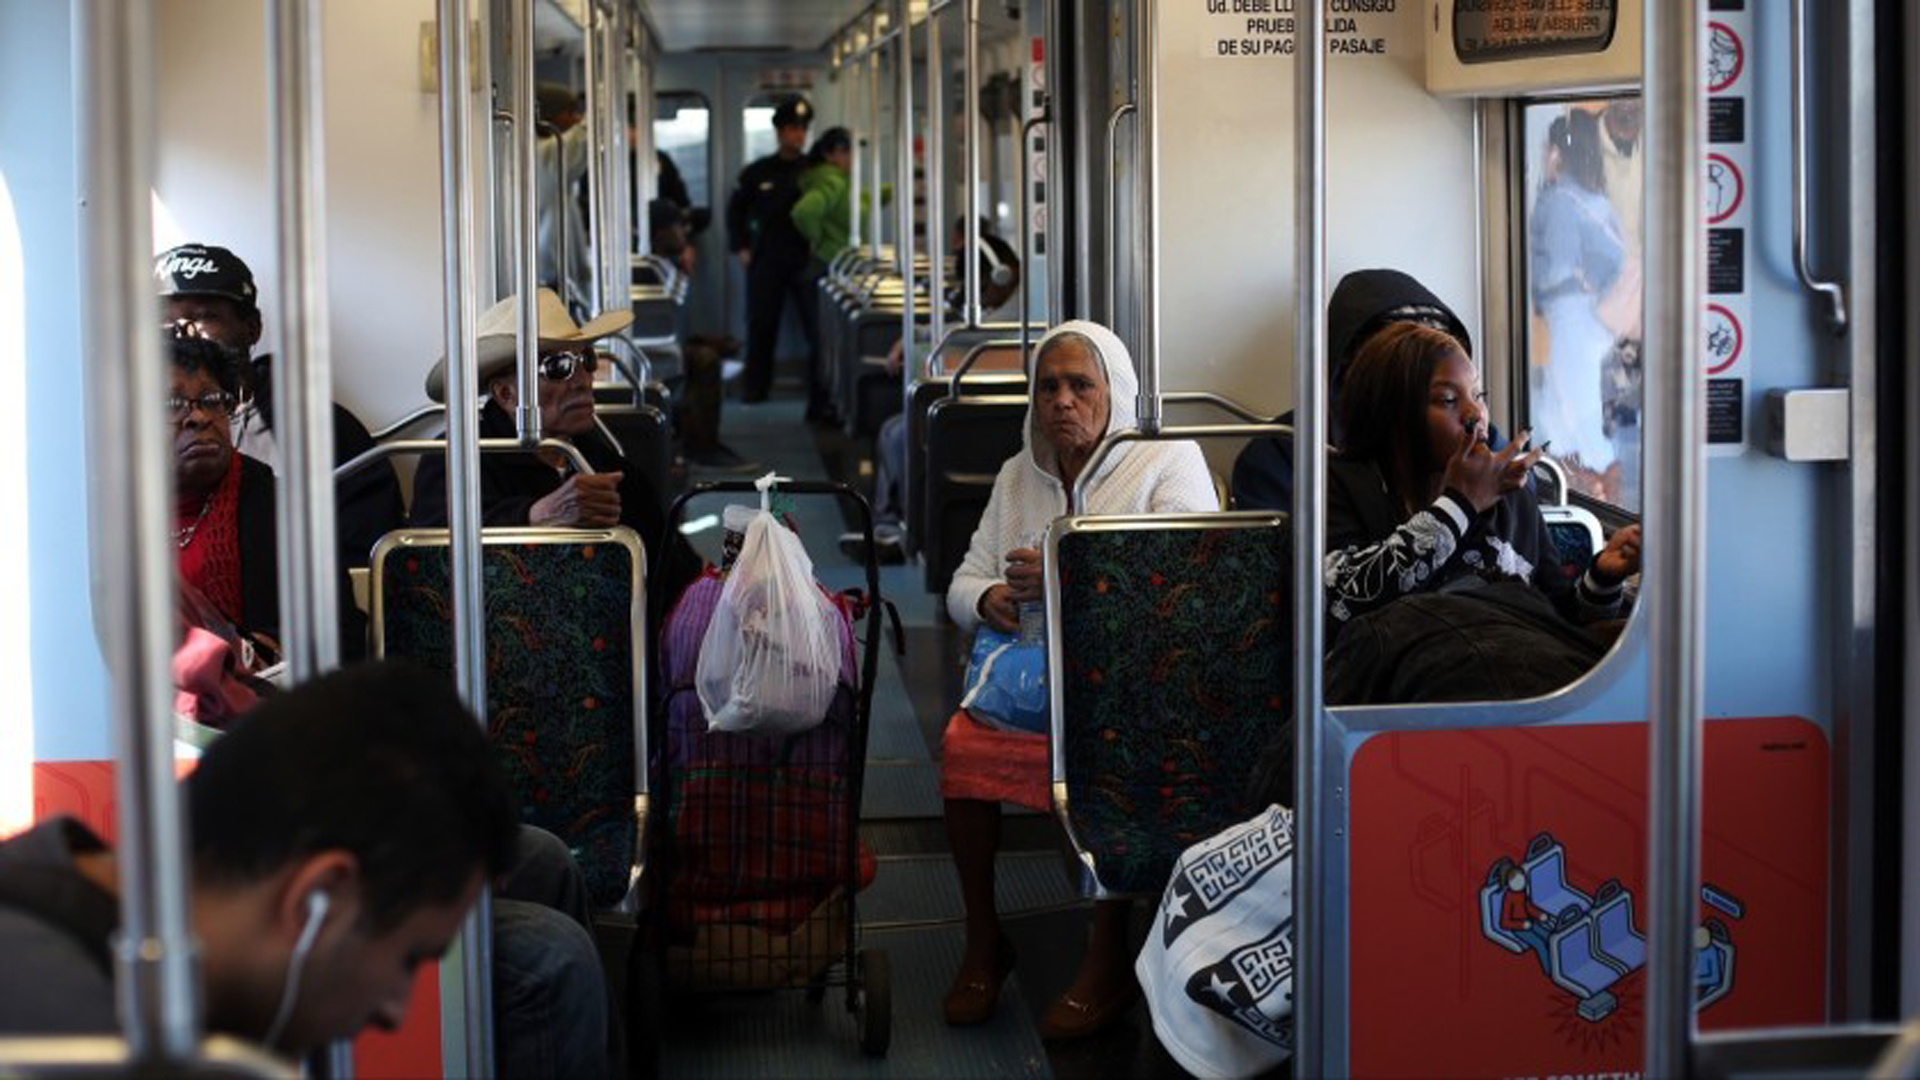 Previously called the Blue Line, the Metro A Line has faced a series of delays since reopening this month after a $350-million overhaul.(Credit: Dania Maxwell / Los Angeles Times)